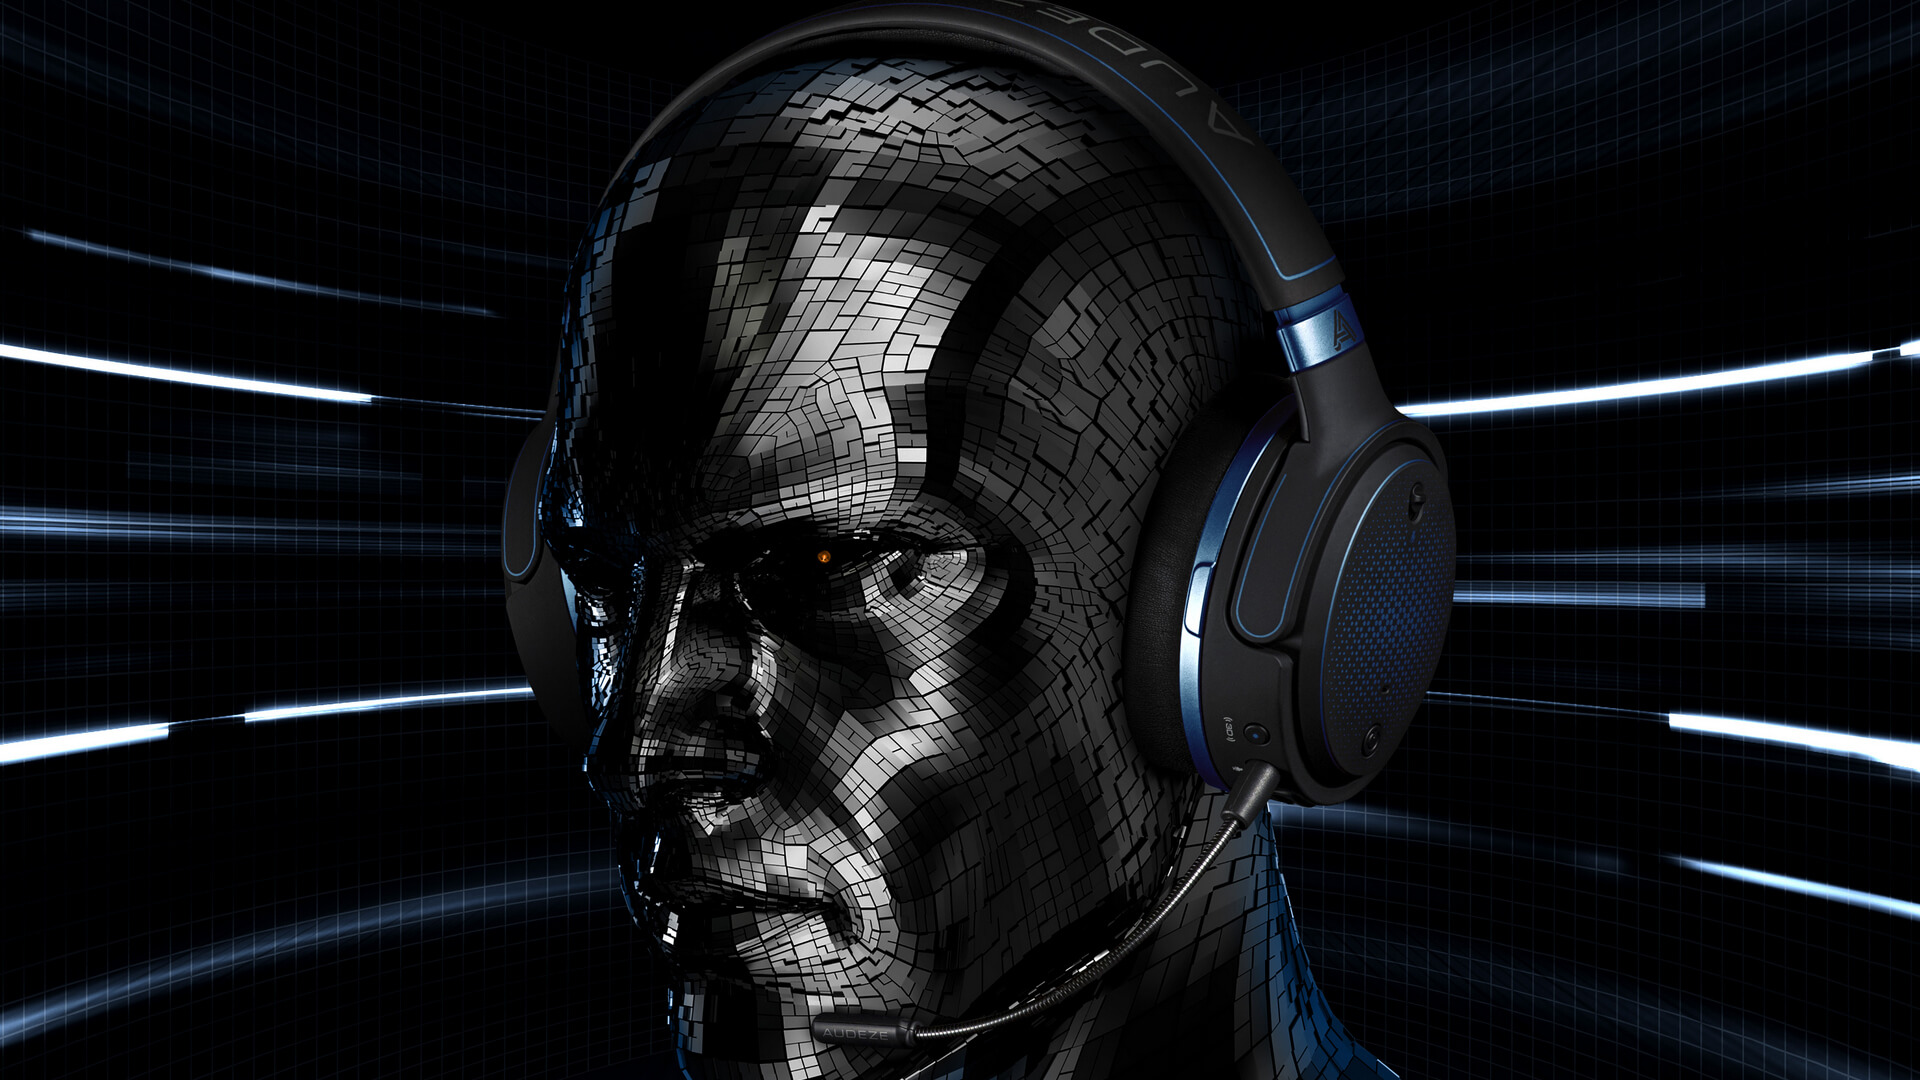 Audeze Mobius Review: A Top Choice in Headphones!